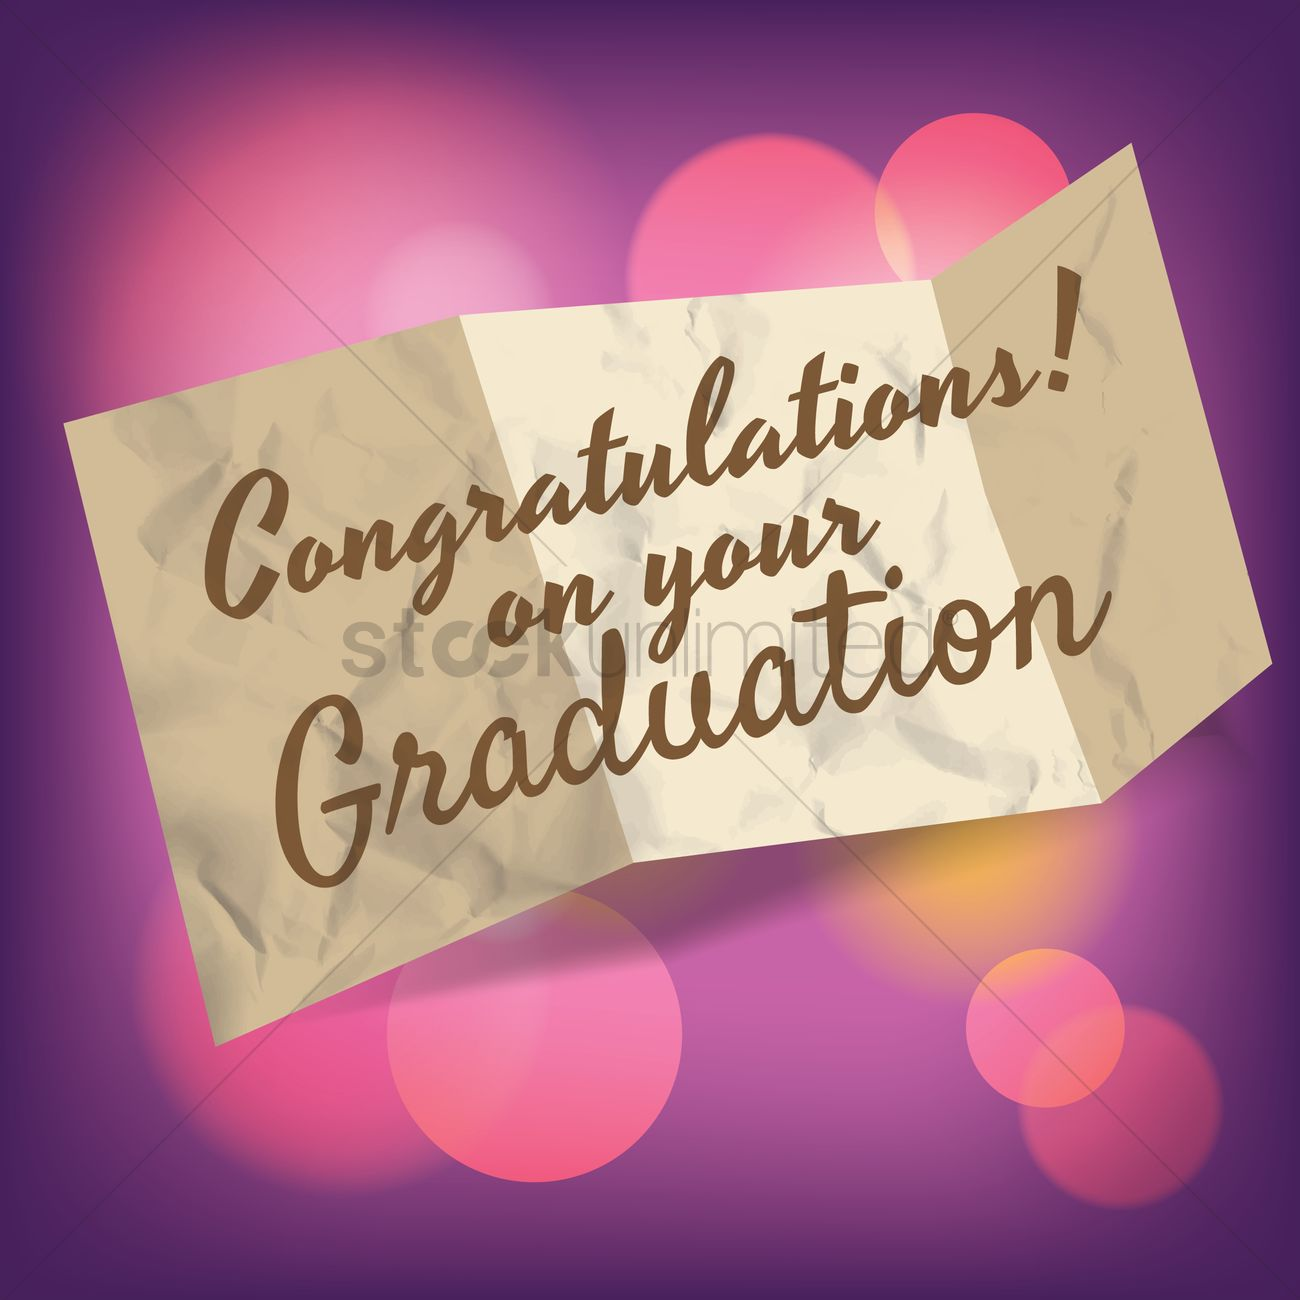 Congratulations On Your Graduation Greeting Vector Image